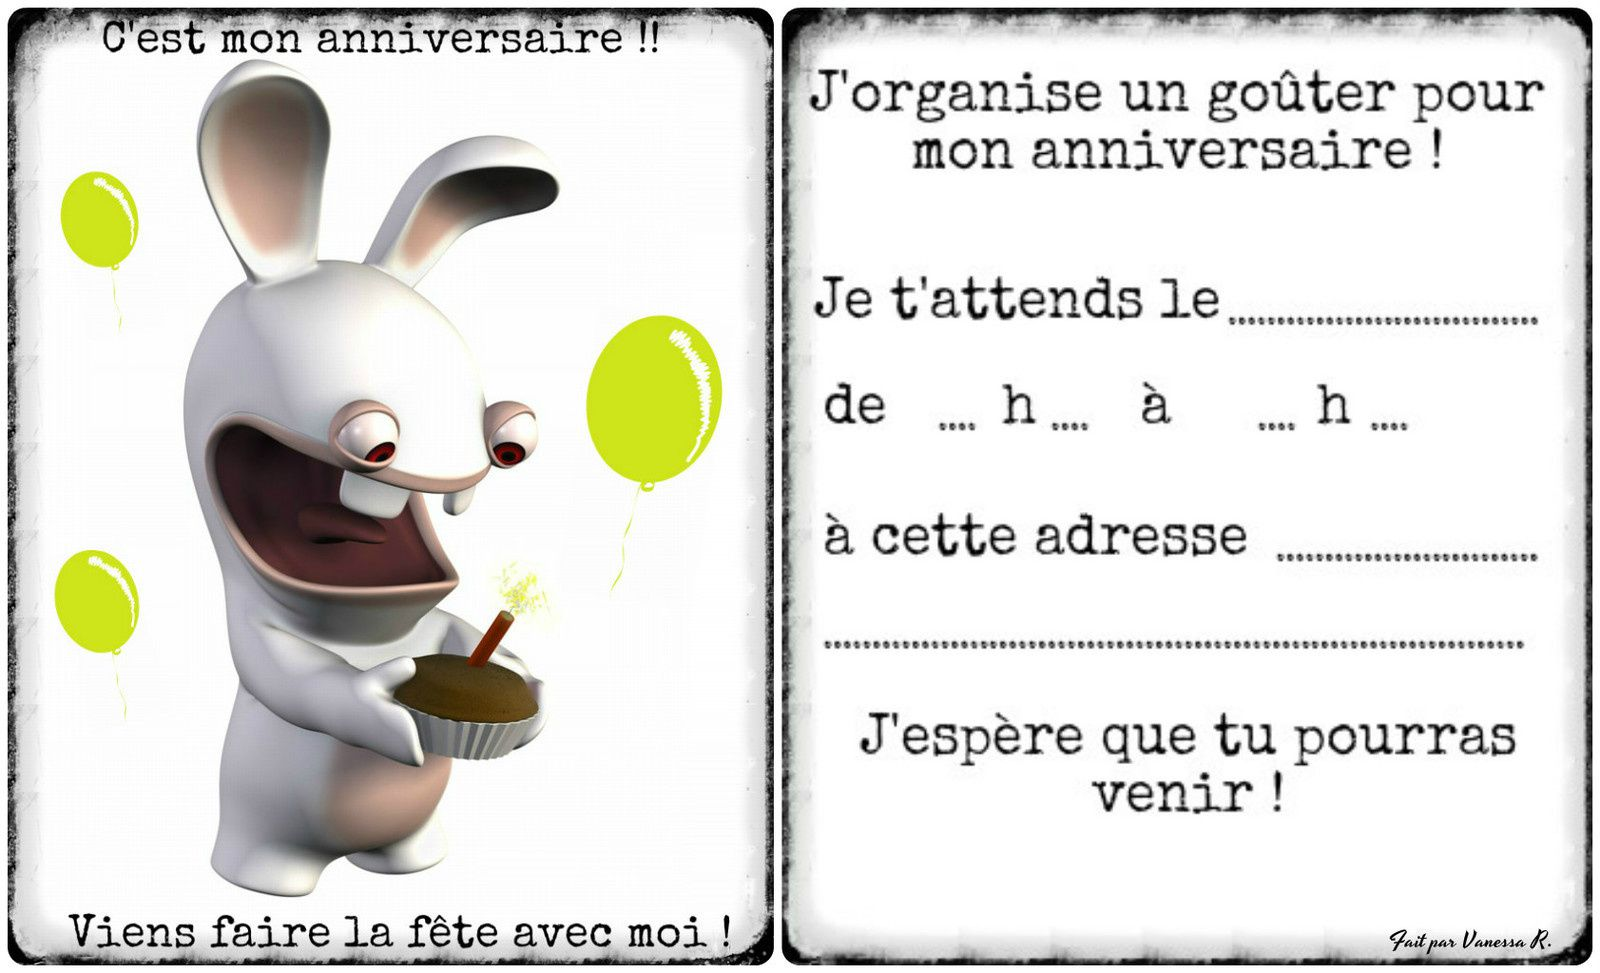 modele invitation anniversaire garcon 8 ans document online. Black Bedroom Furniture Sets. Home Design Ideas